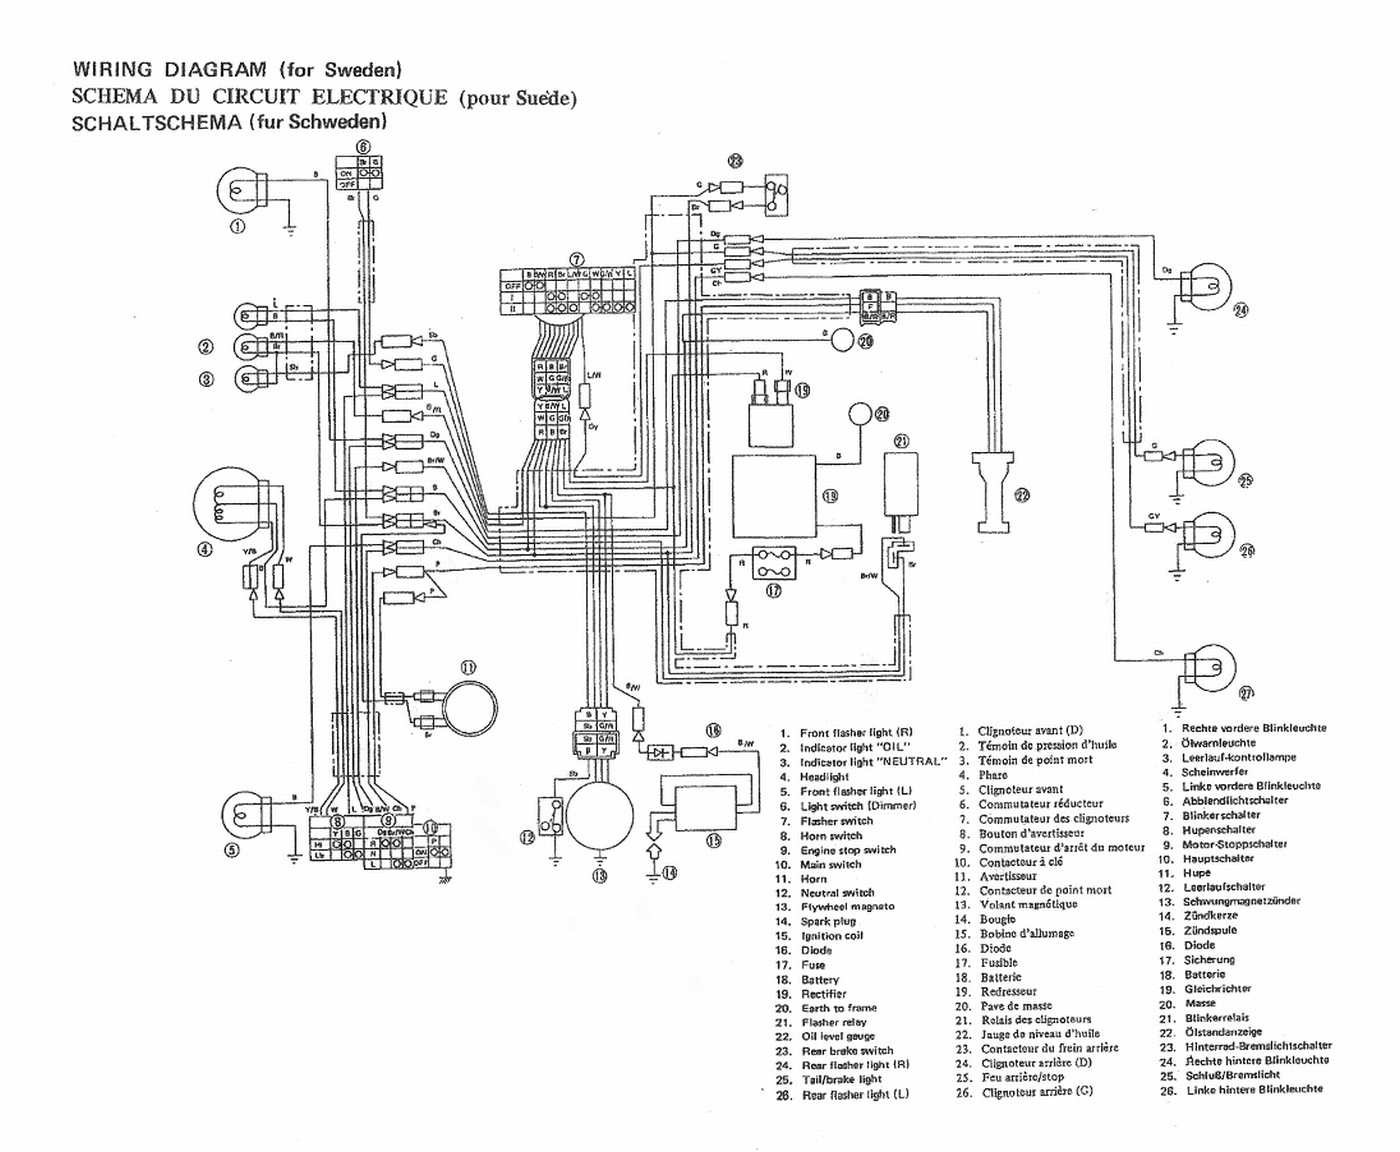 Yamaha Chappy Fuel Diagram Yamaha Free Engine Image For User Manual Download